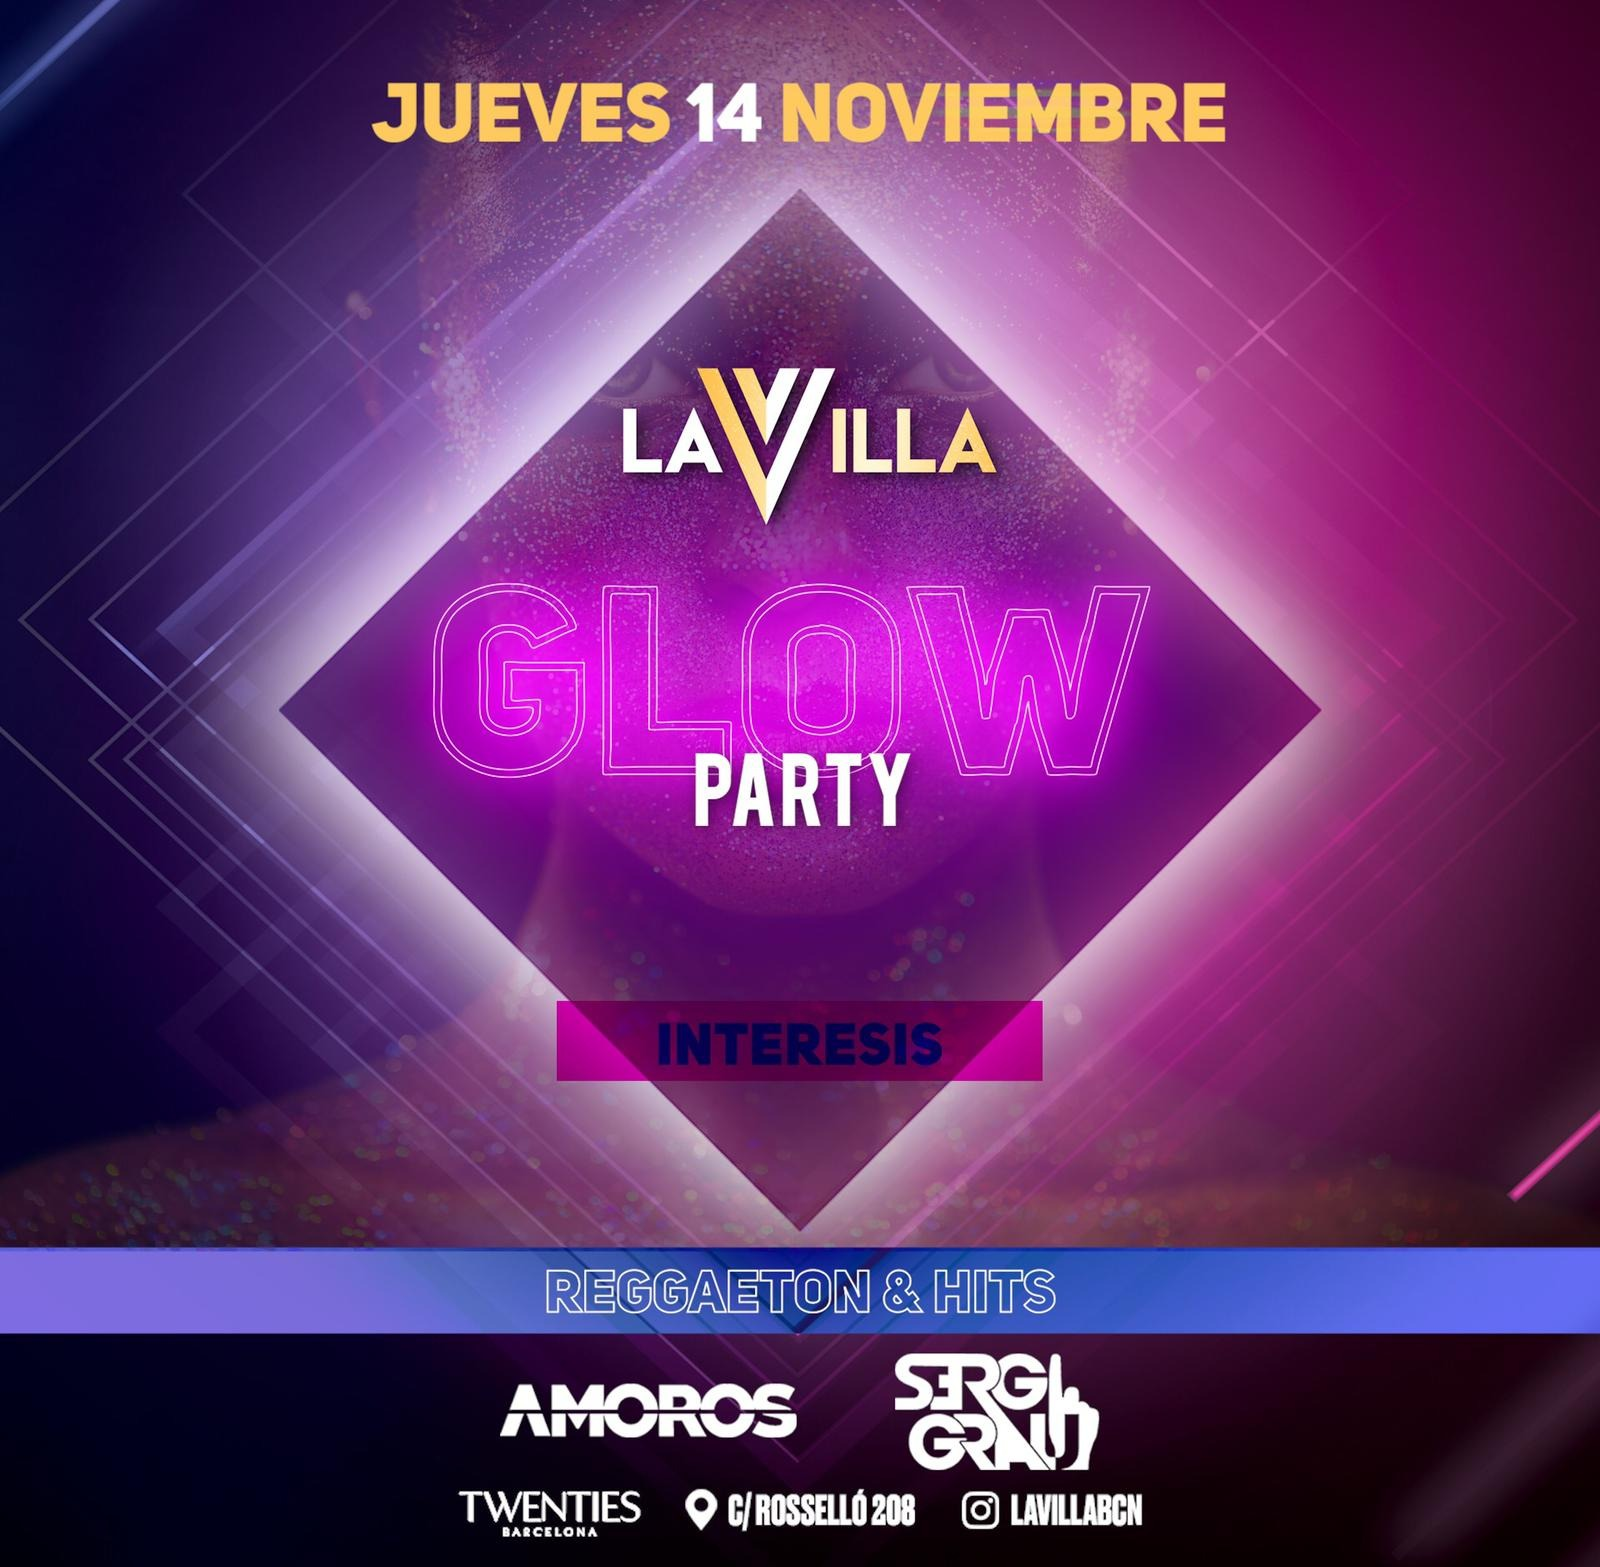 Jueves - La Villa - Twenties - Club Twenties Barcelona